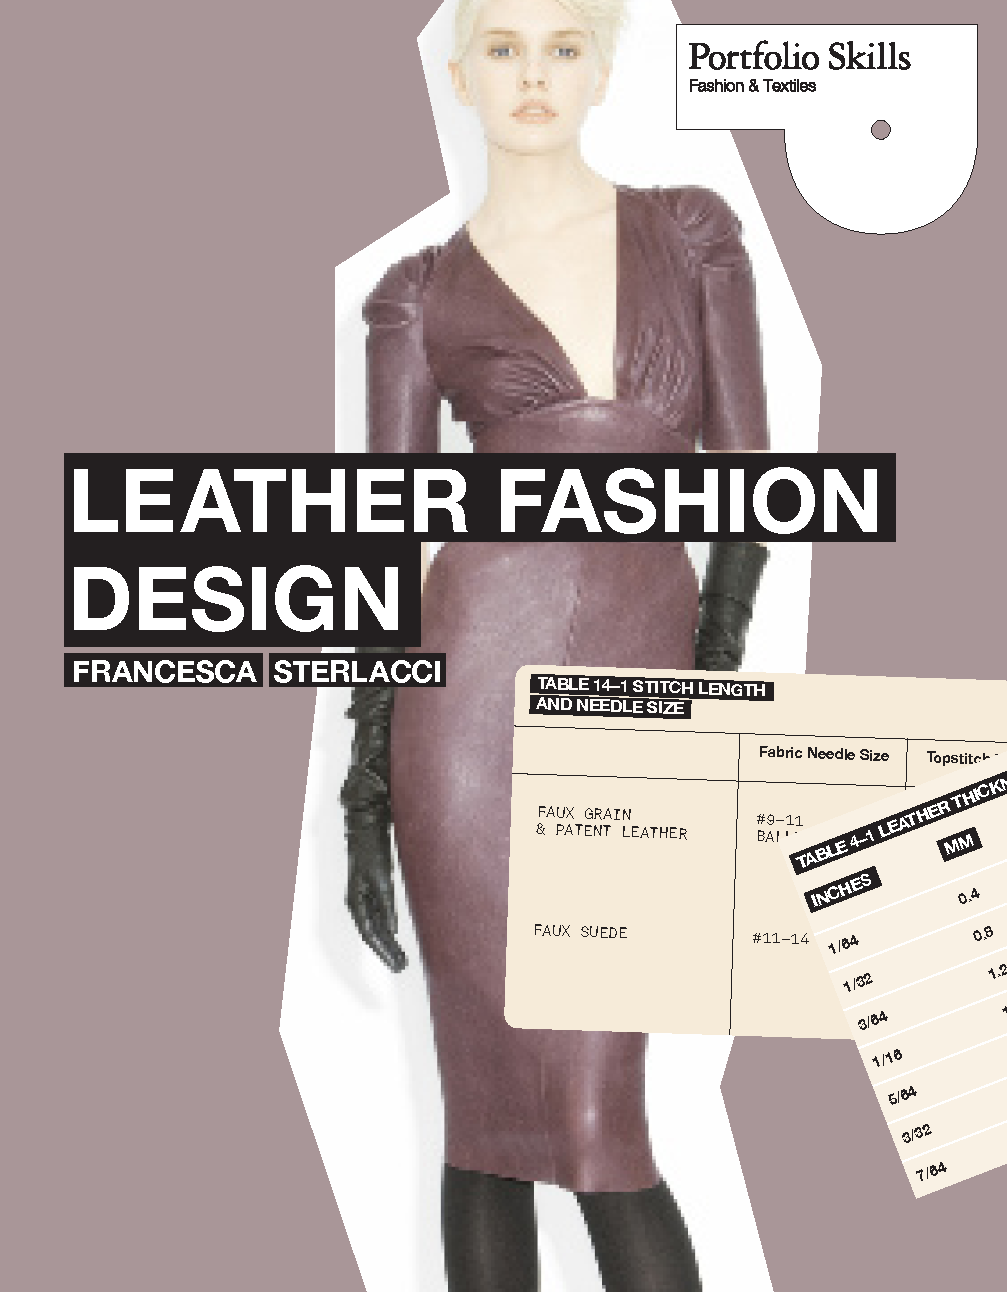 Leather Fashion Design - Product Thumbnail